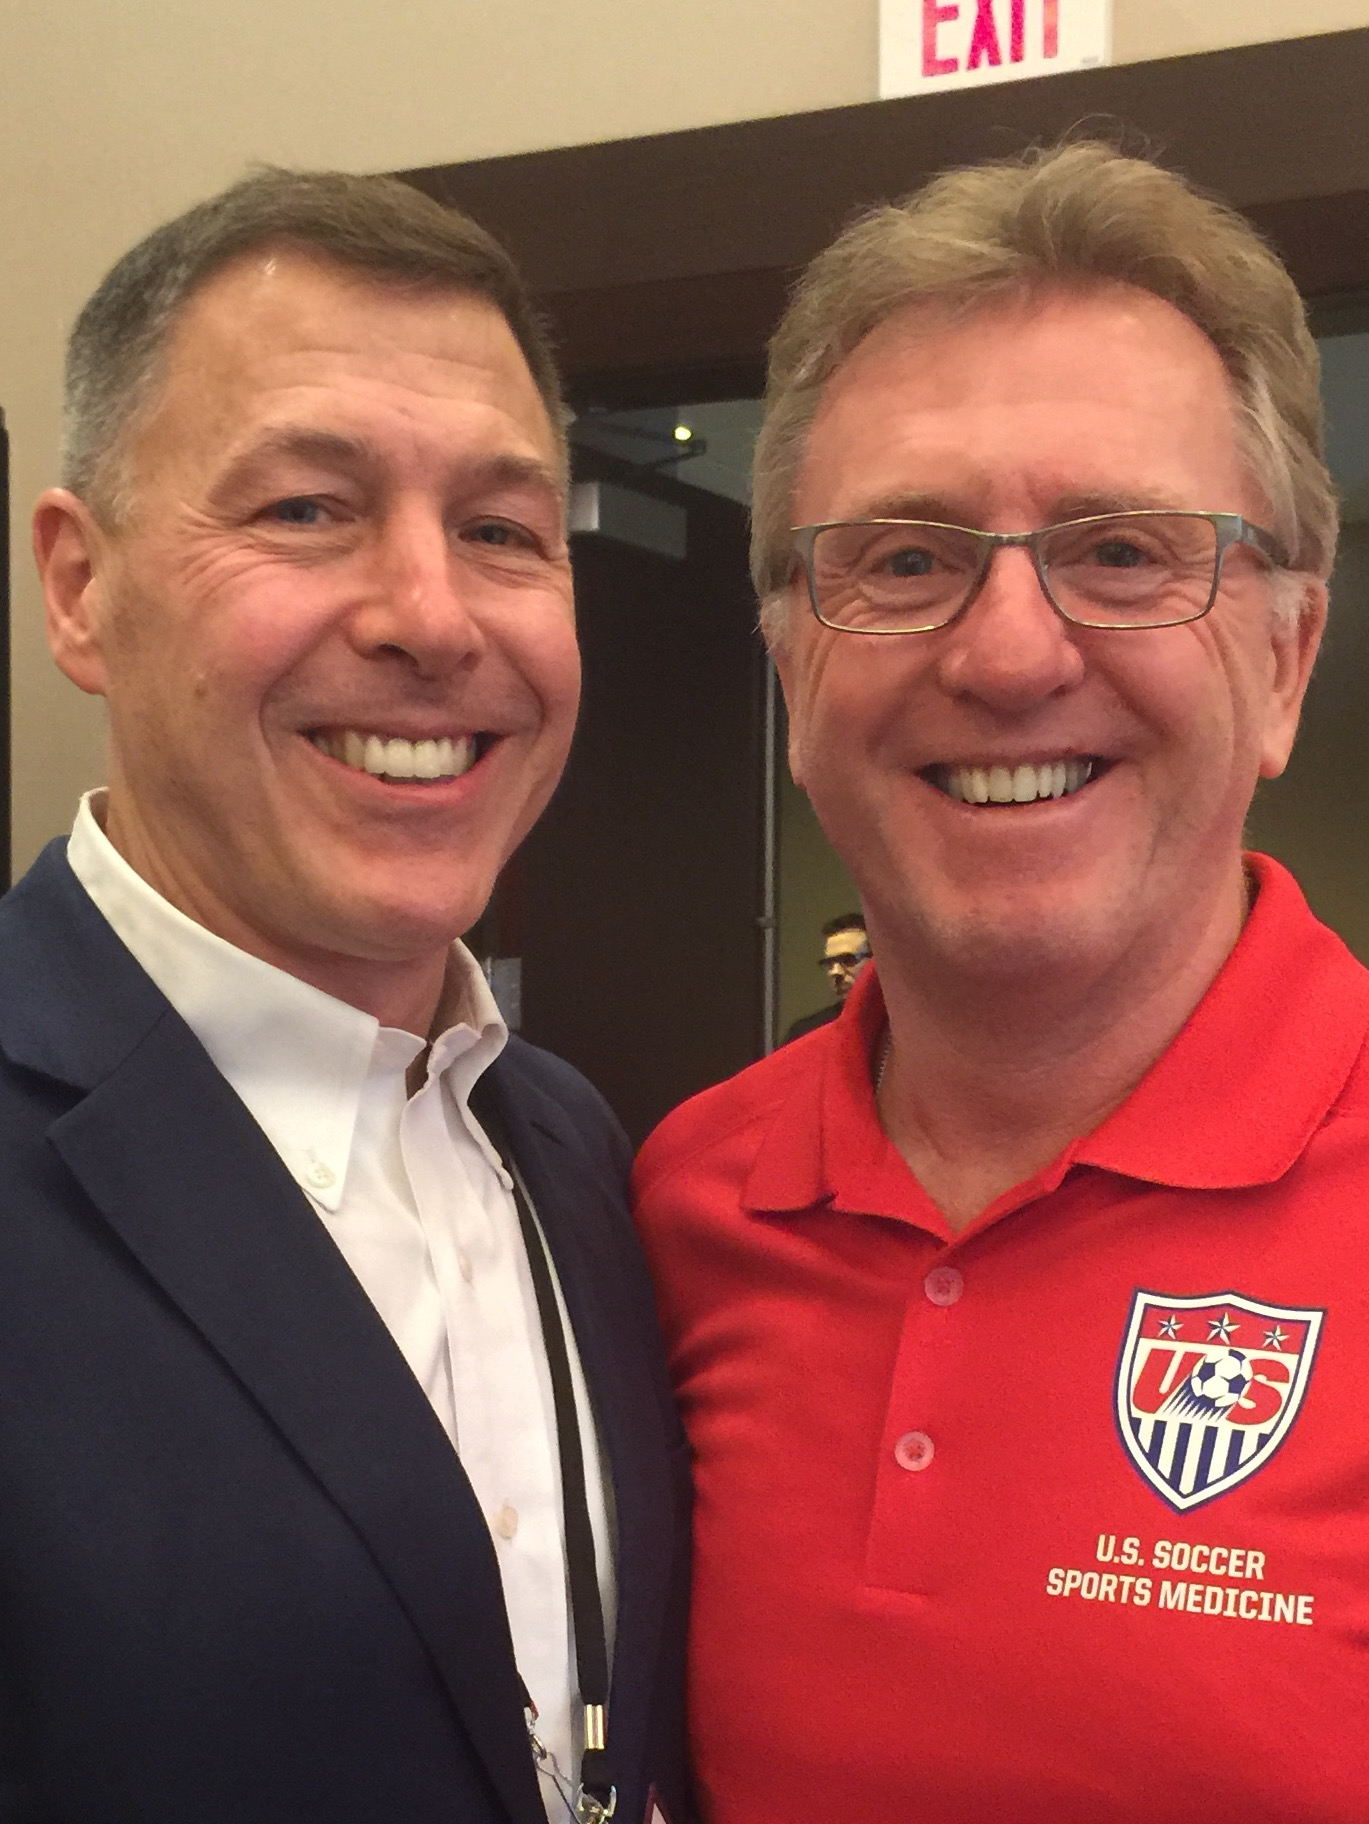 Dr. Monto and Hughie O'Malley, director of US Soccer Sports Medicine.